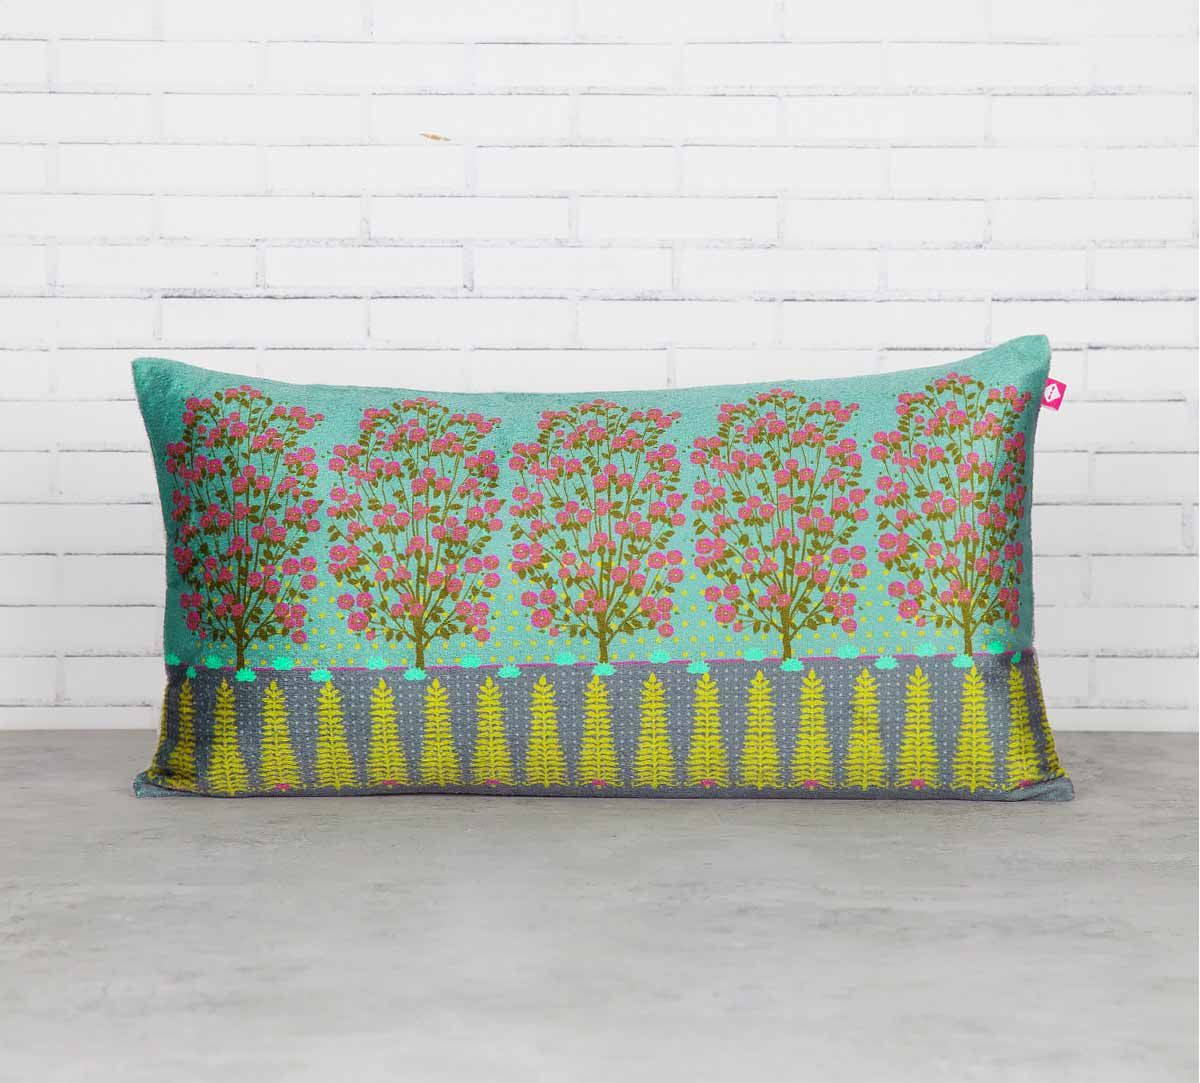 India Circus Conifer and Cherry Blossom Blended Velvet Cushion Cover